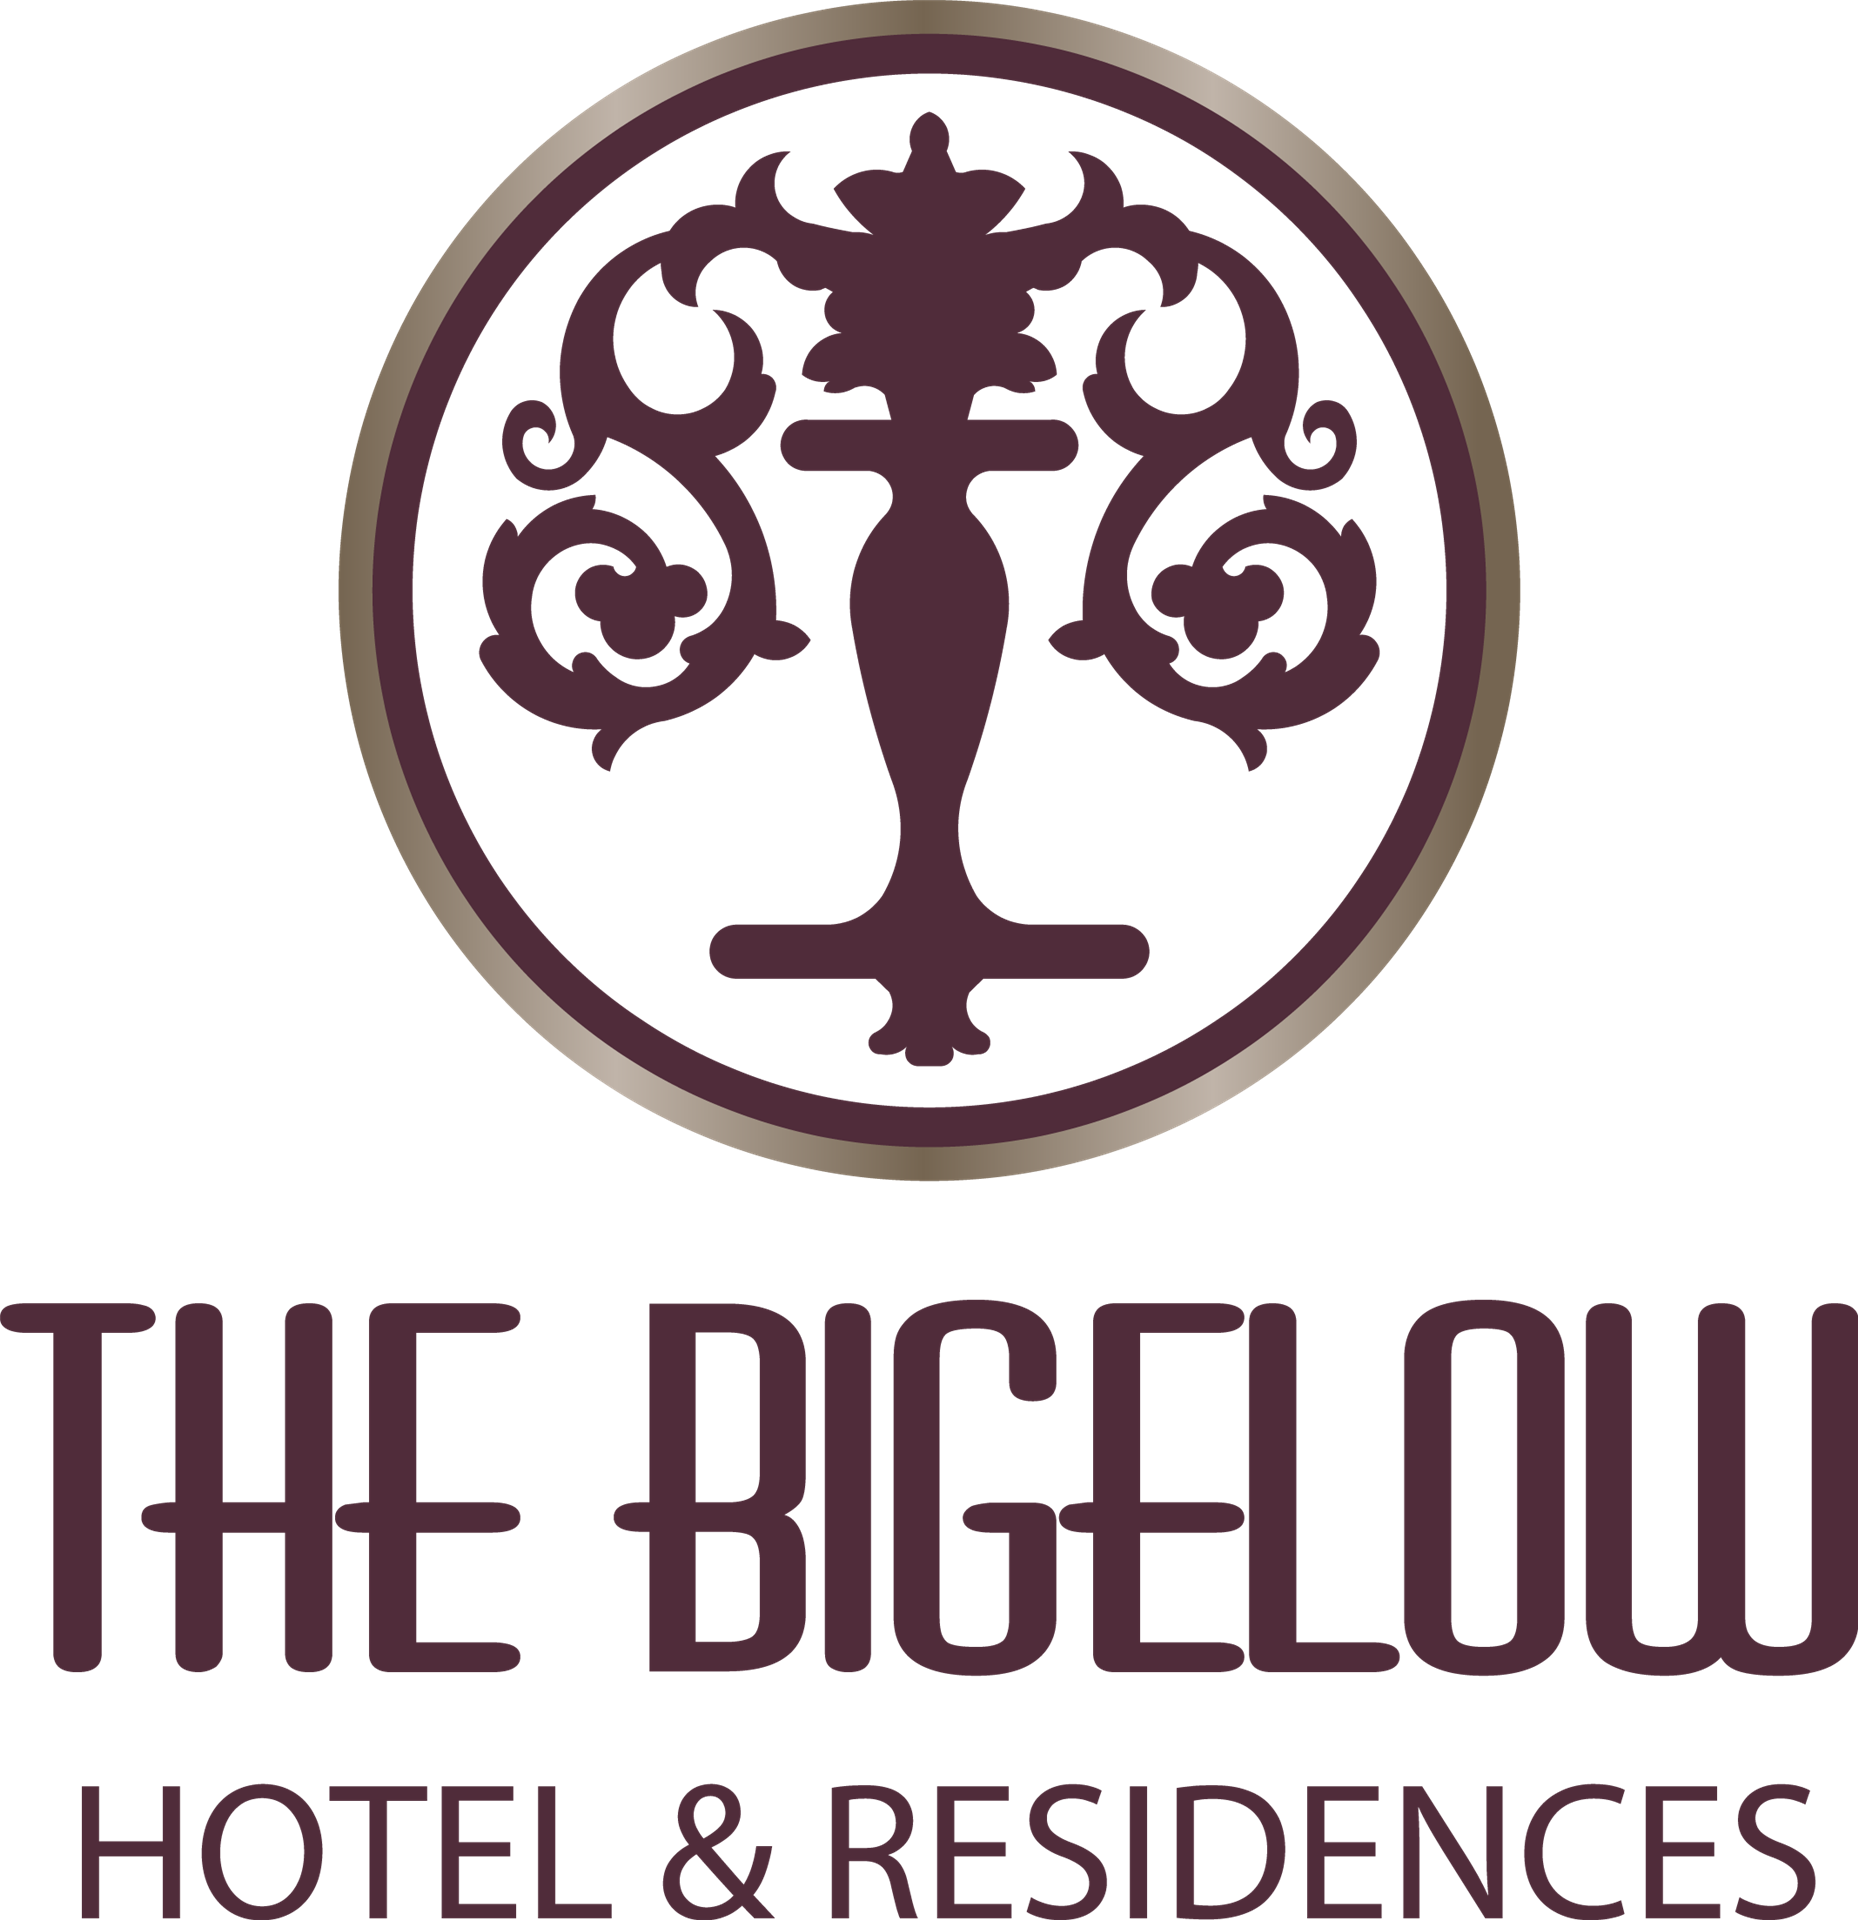 Bigelow Hotel and Residences, an Ascend Hotel Collection Member